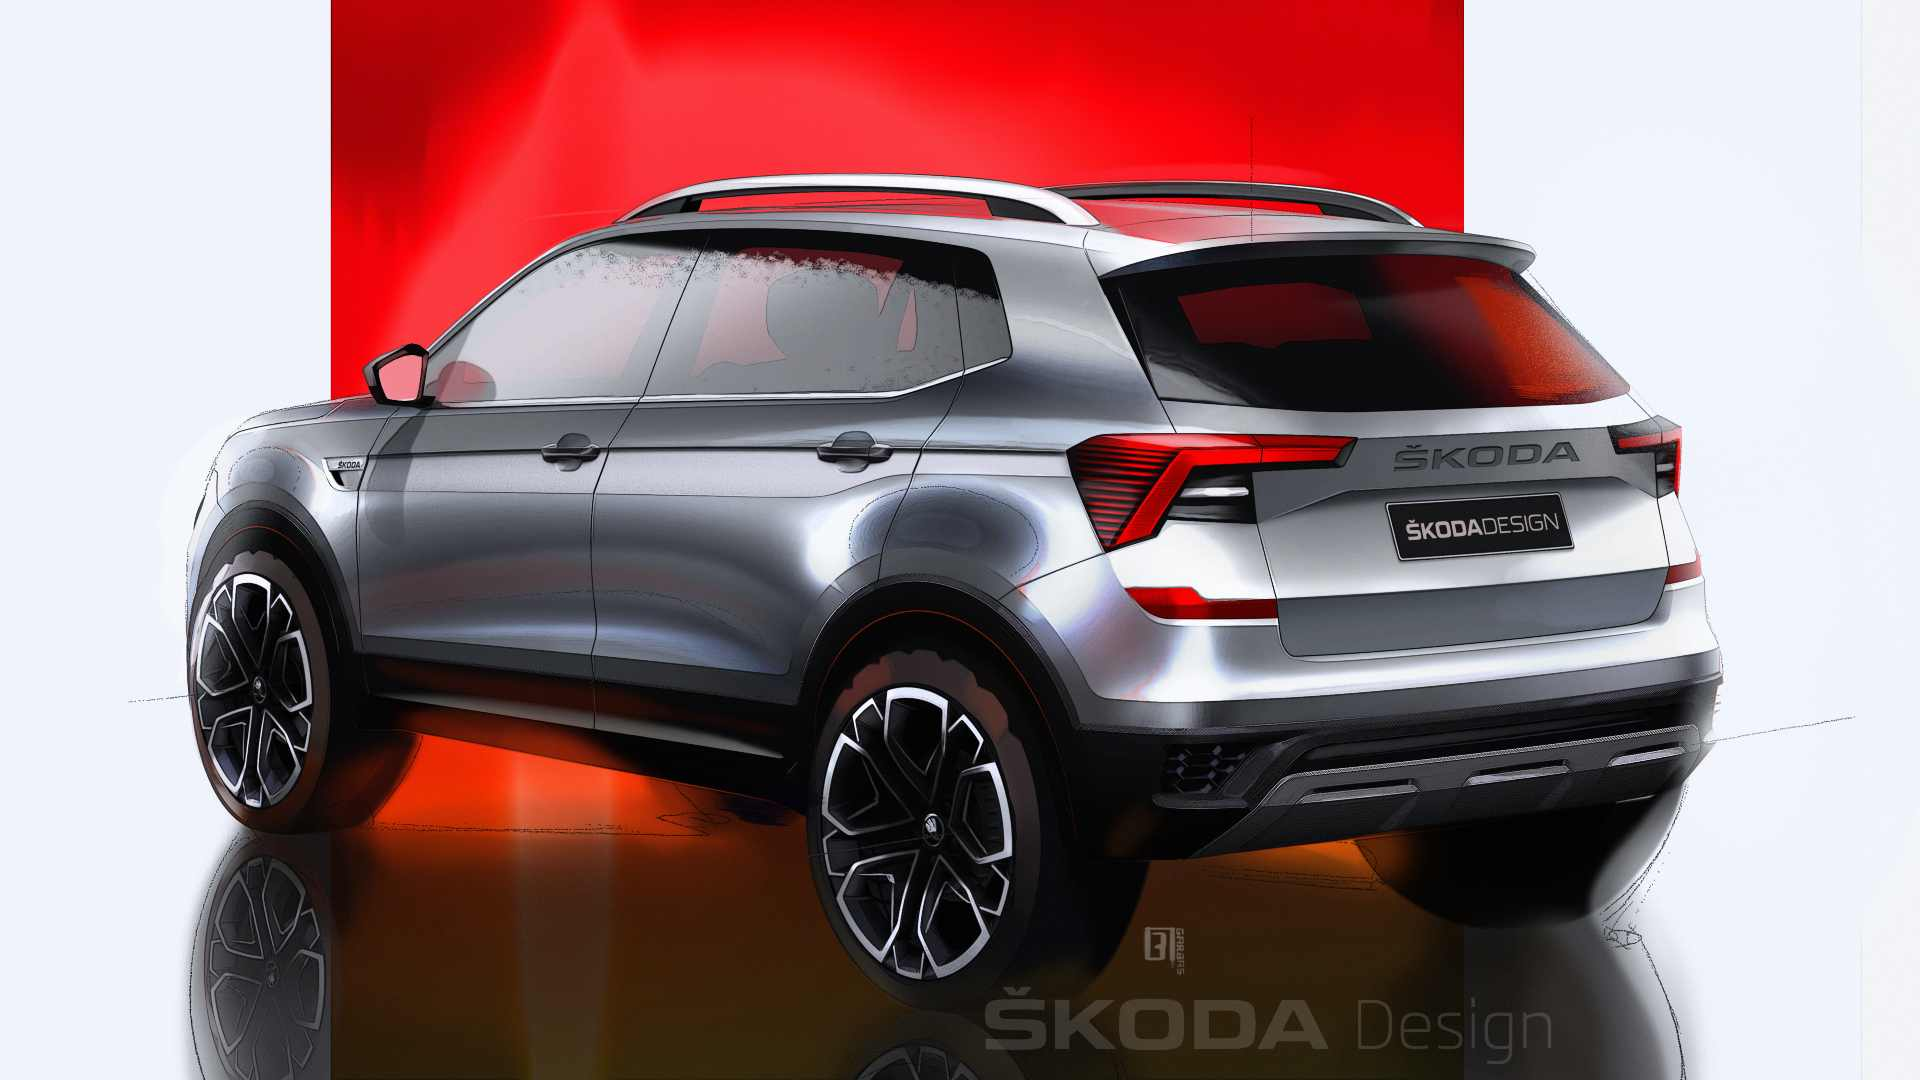 The Skoda Kushaq will be available with two turbo-petrol engine options. Image: Skoda